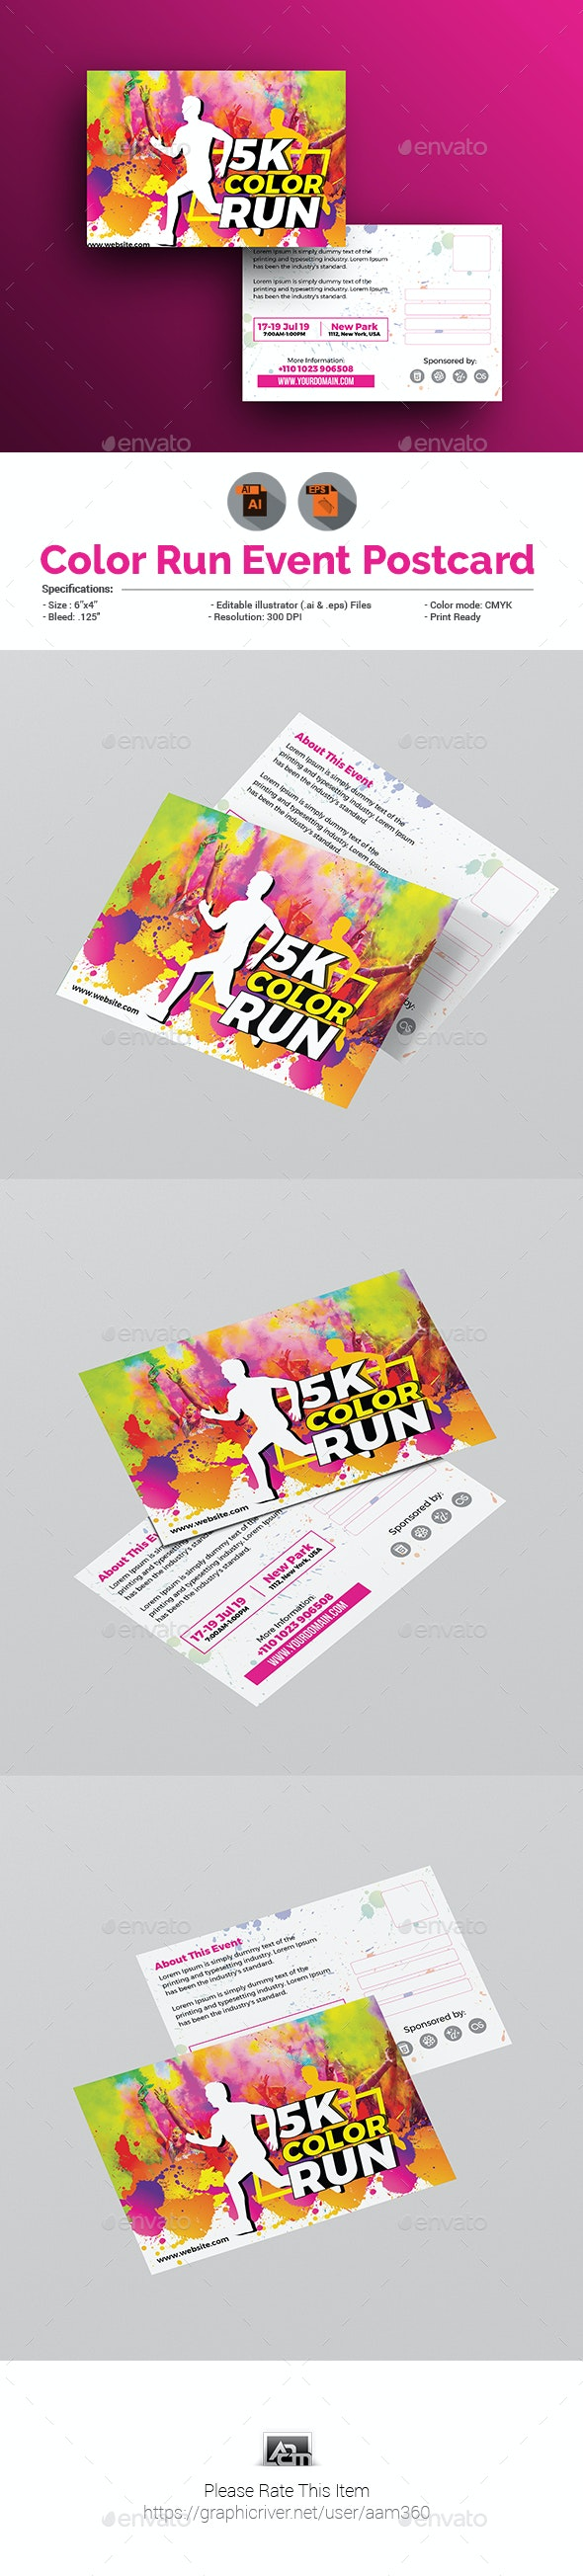 Color Run Event Postcard Template - Cards & Invites Print Templates